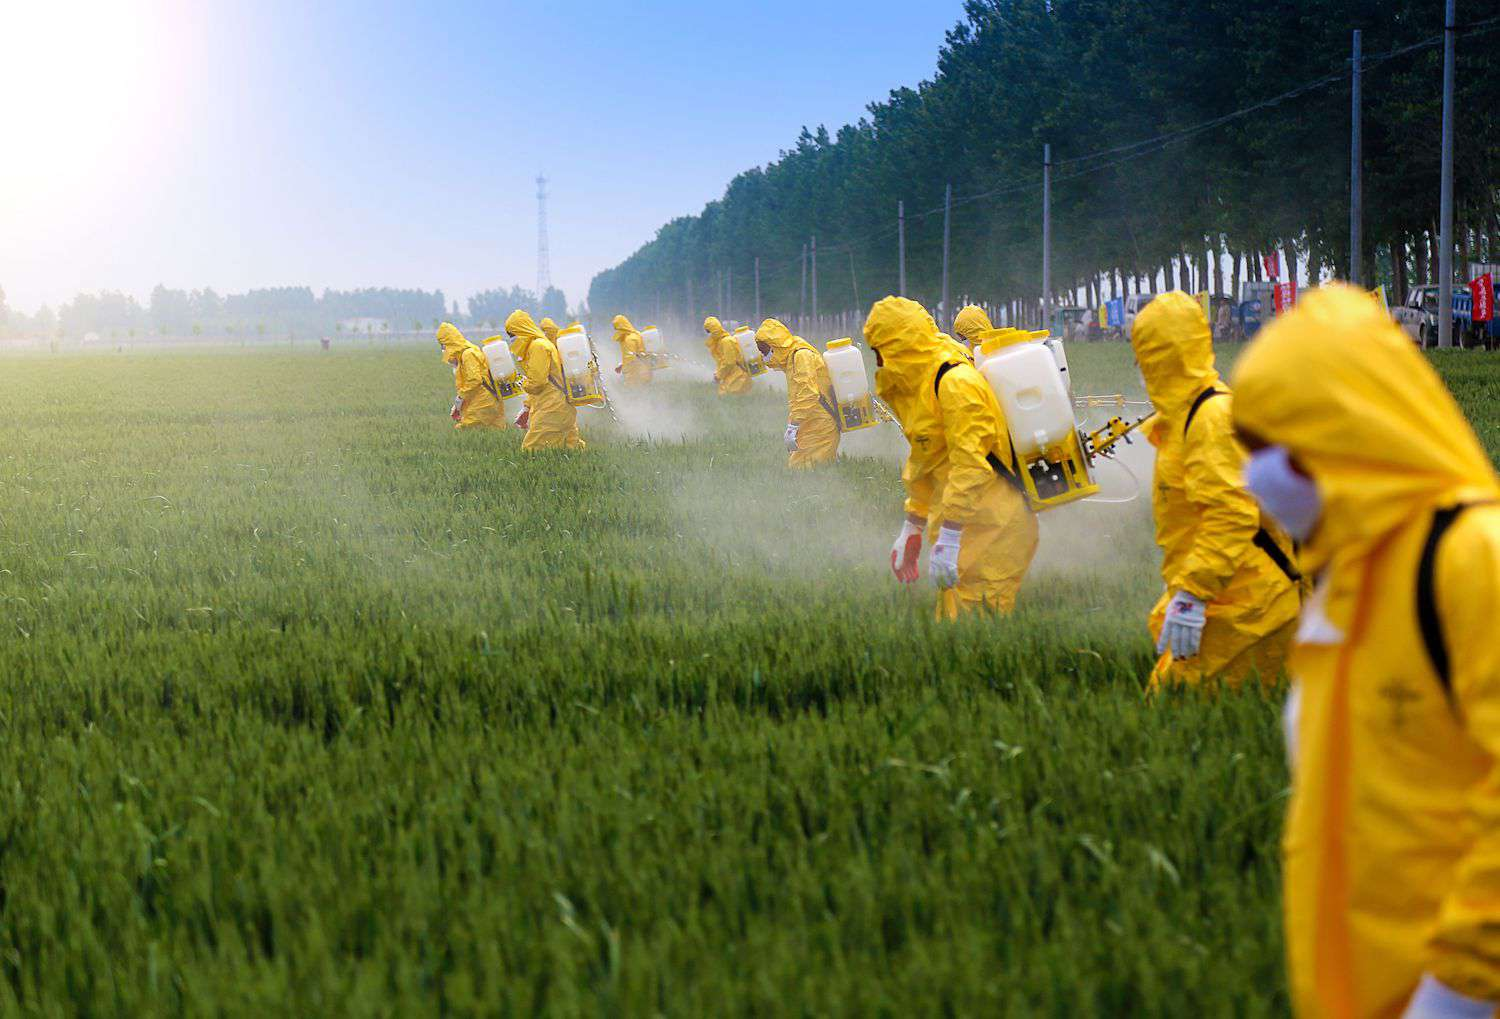 workers spraying pesticide in a field